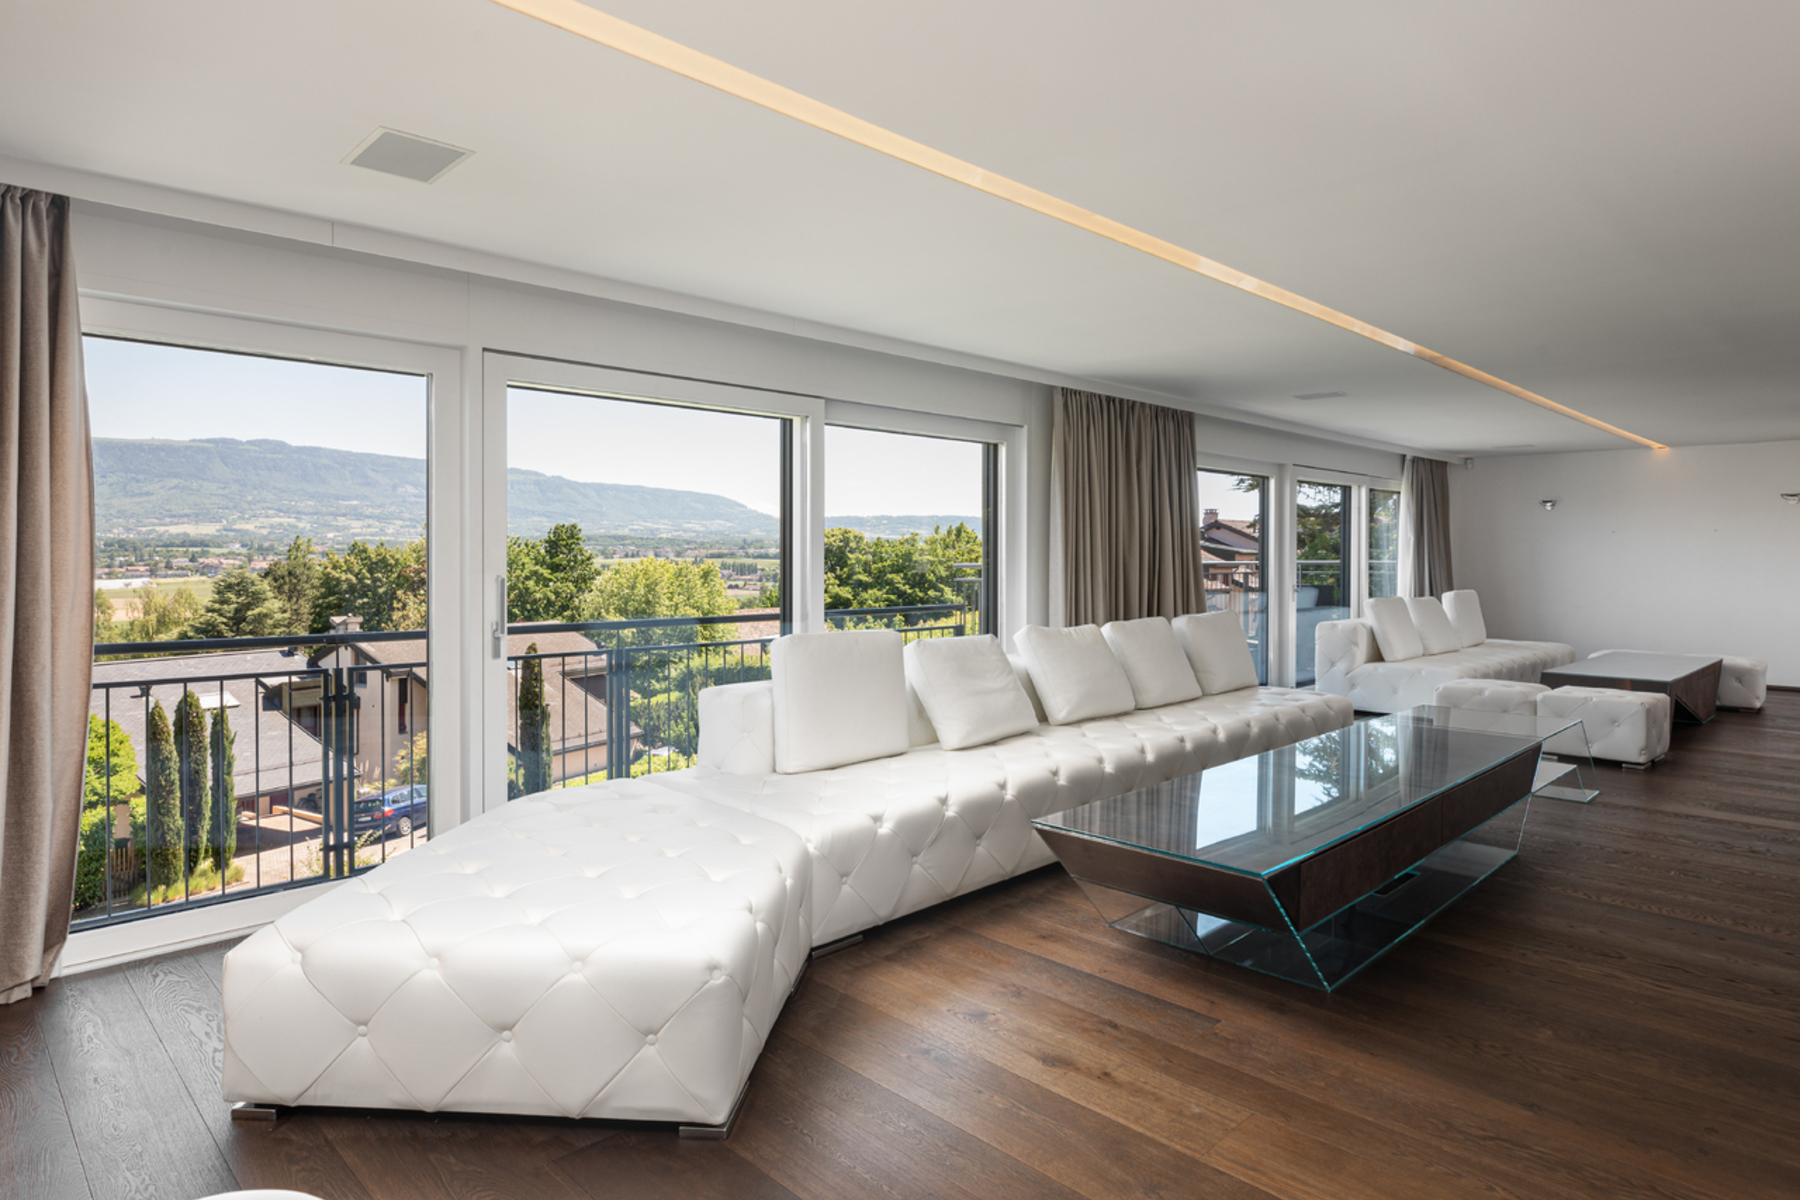 Property for Sale at Exclusive duplex in a quiet area Confignon Other Geneve, Geneva 1232 Switzerland